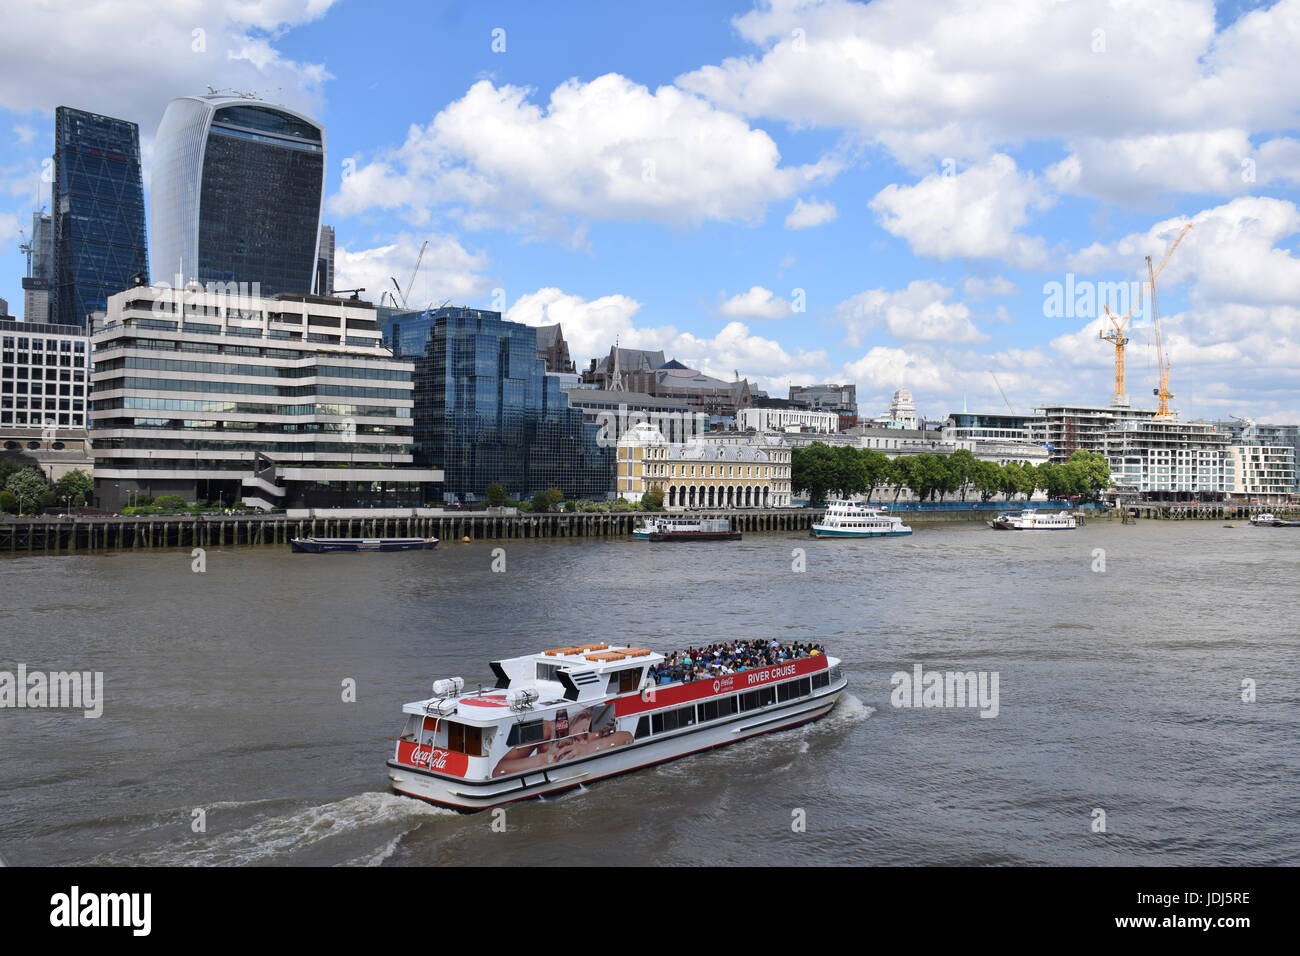 Tour boat on River Thames. In the background: City of London - 20 Fenchurch Street (Walkie Talkie building) and - Stock Image